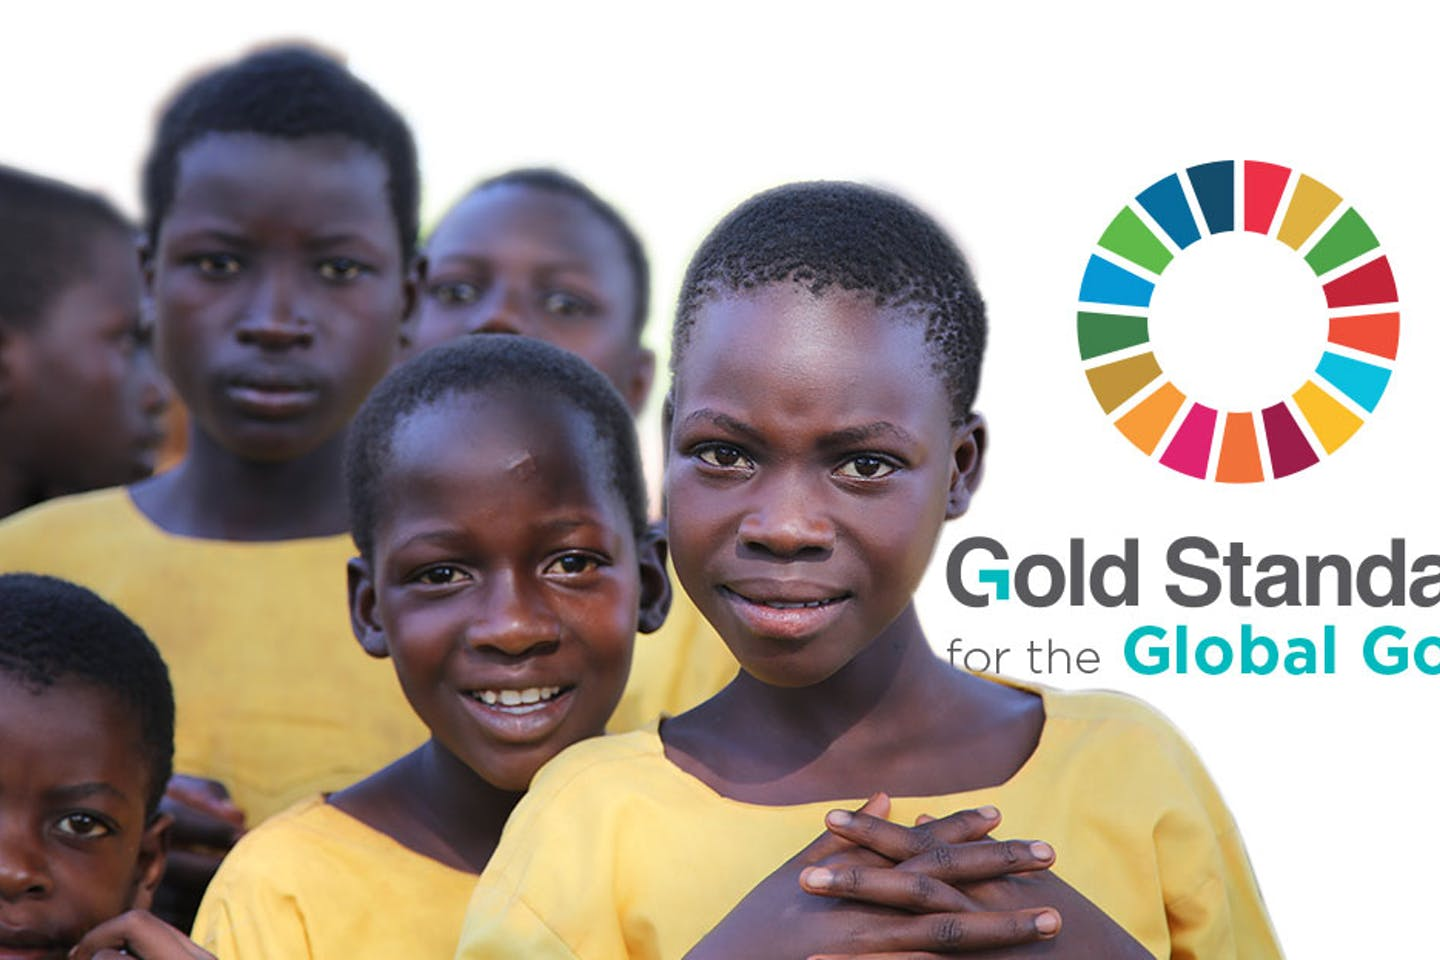 New standard launched to accelerate and measure progress toward the Sustainable Development Goals and climate targets